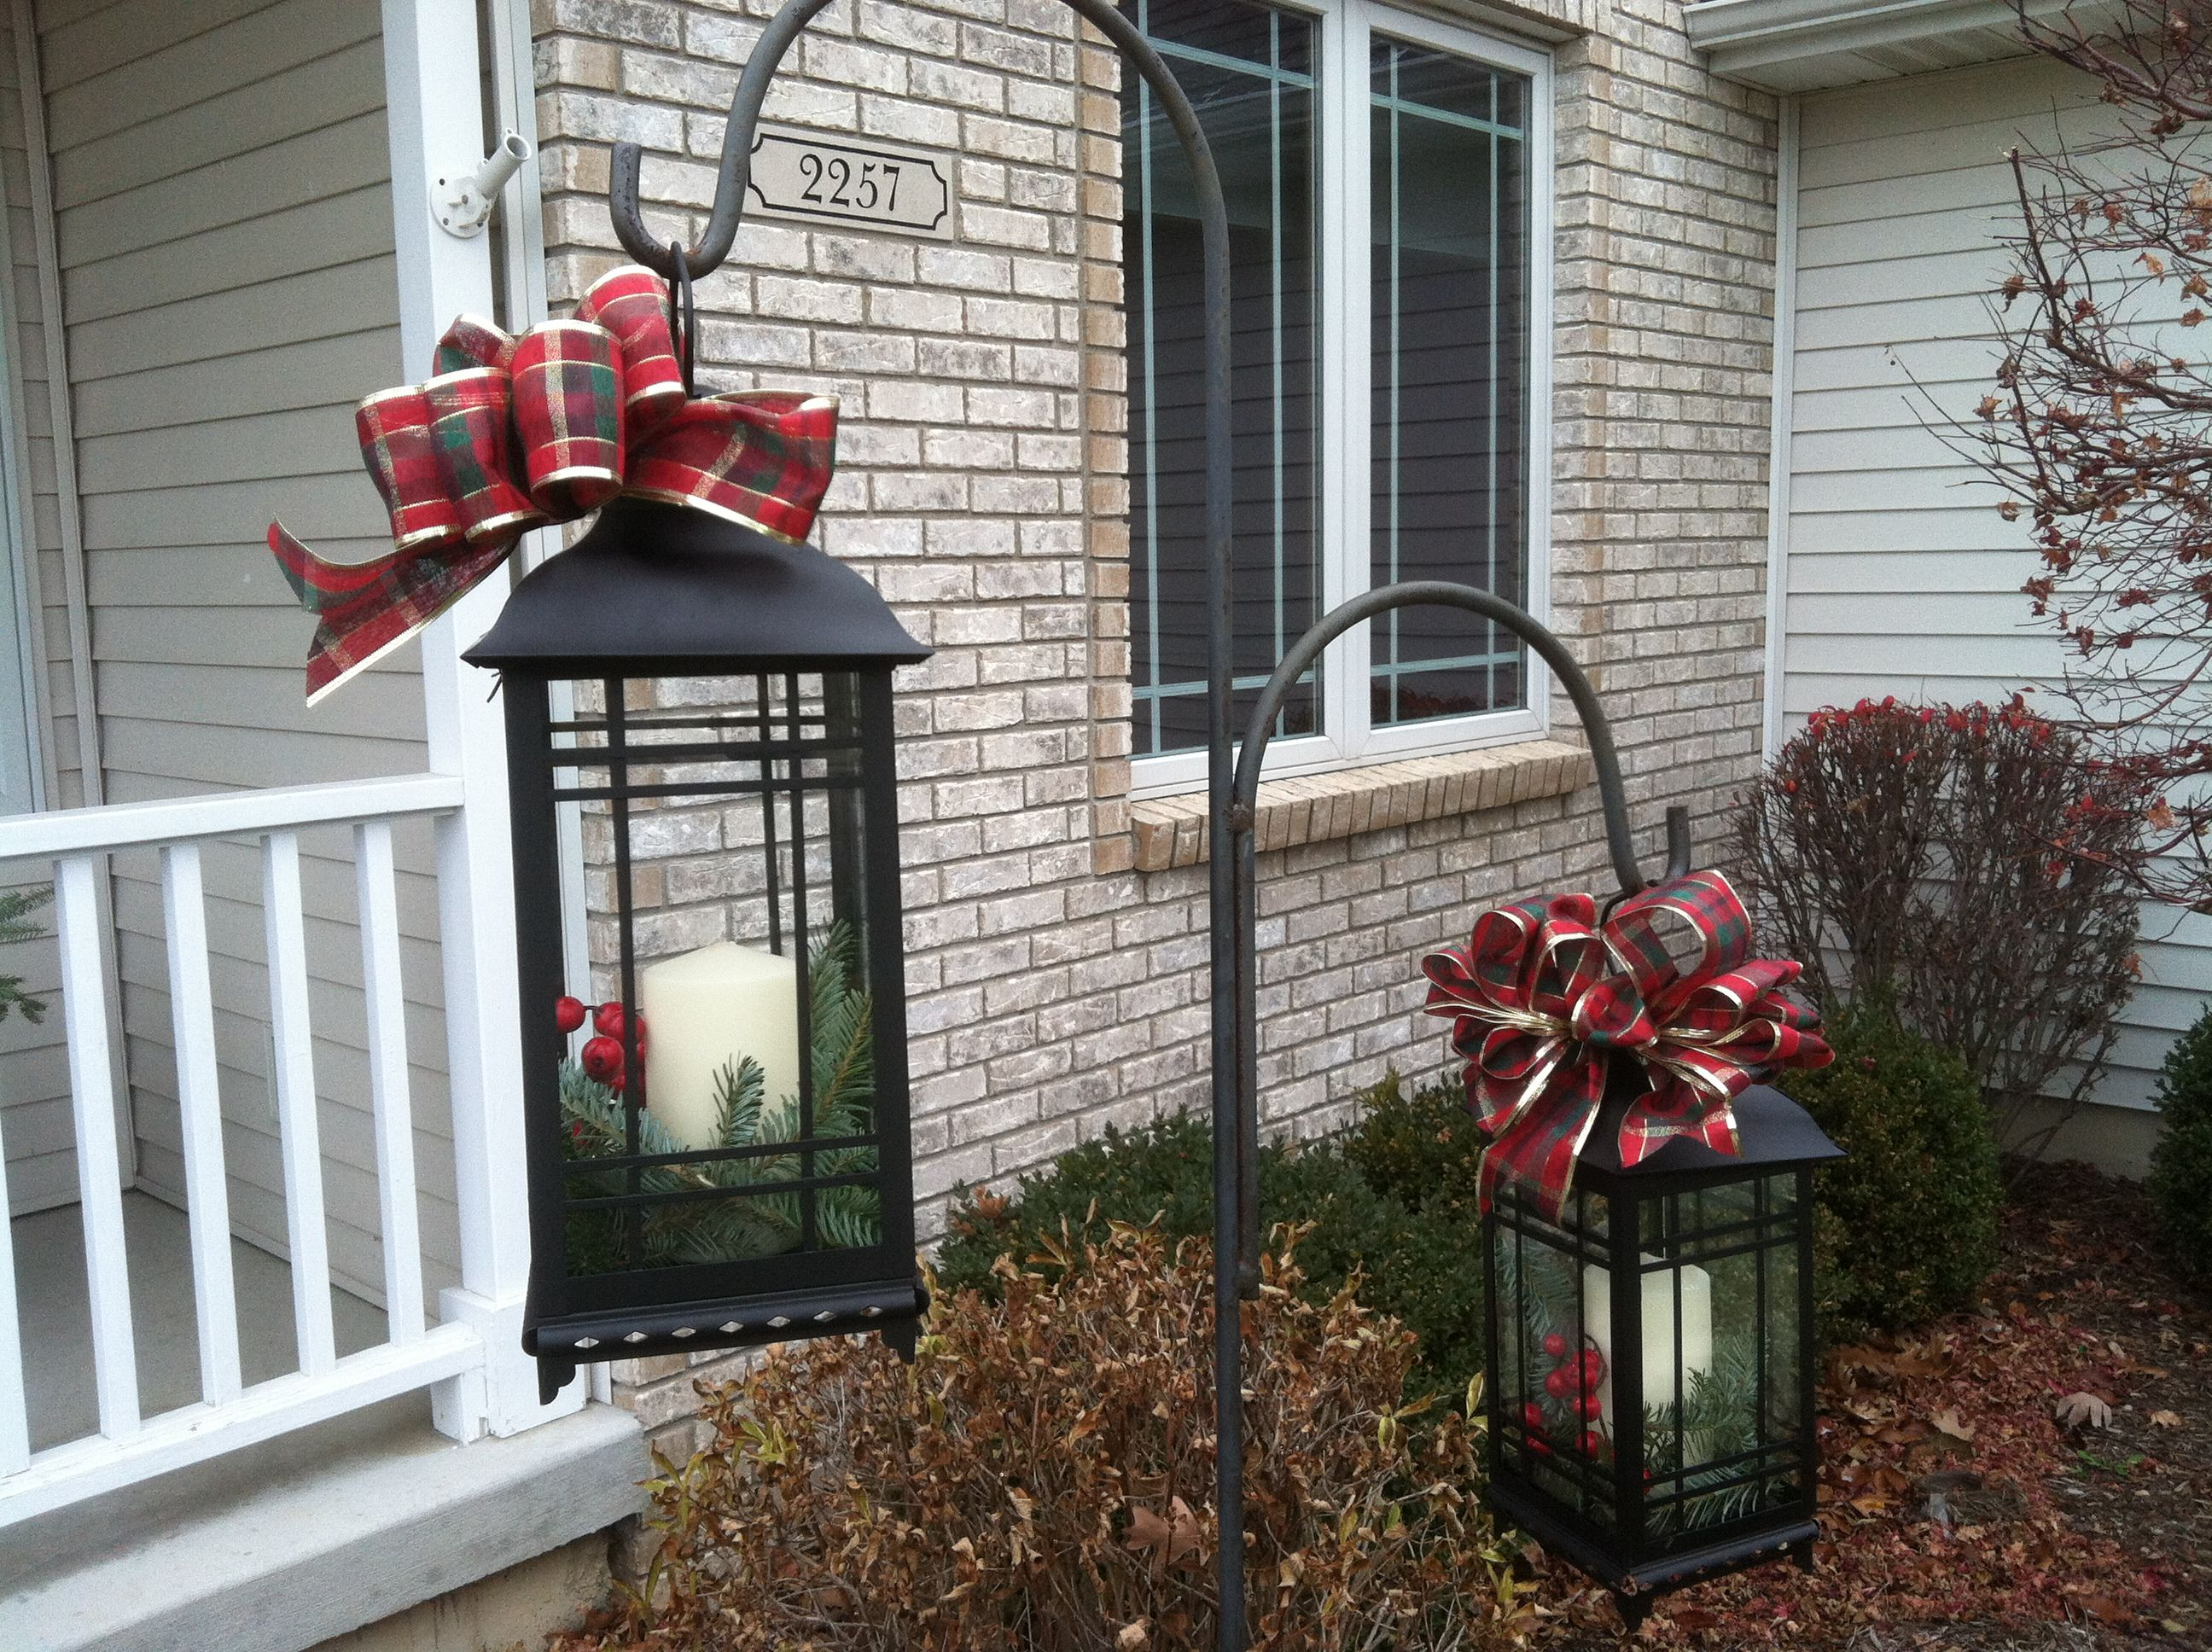 Hang Lanterns From Shepherds Hooks During The Holiday Season Christmas Decorations Diy Outdoor Front Porch Christmas Decor Christmas Lanterns